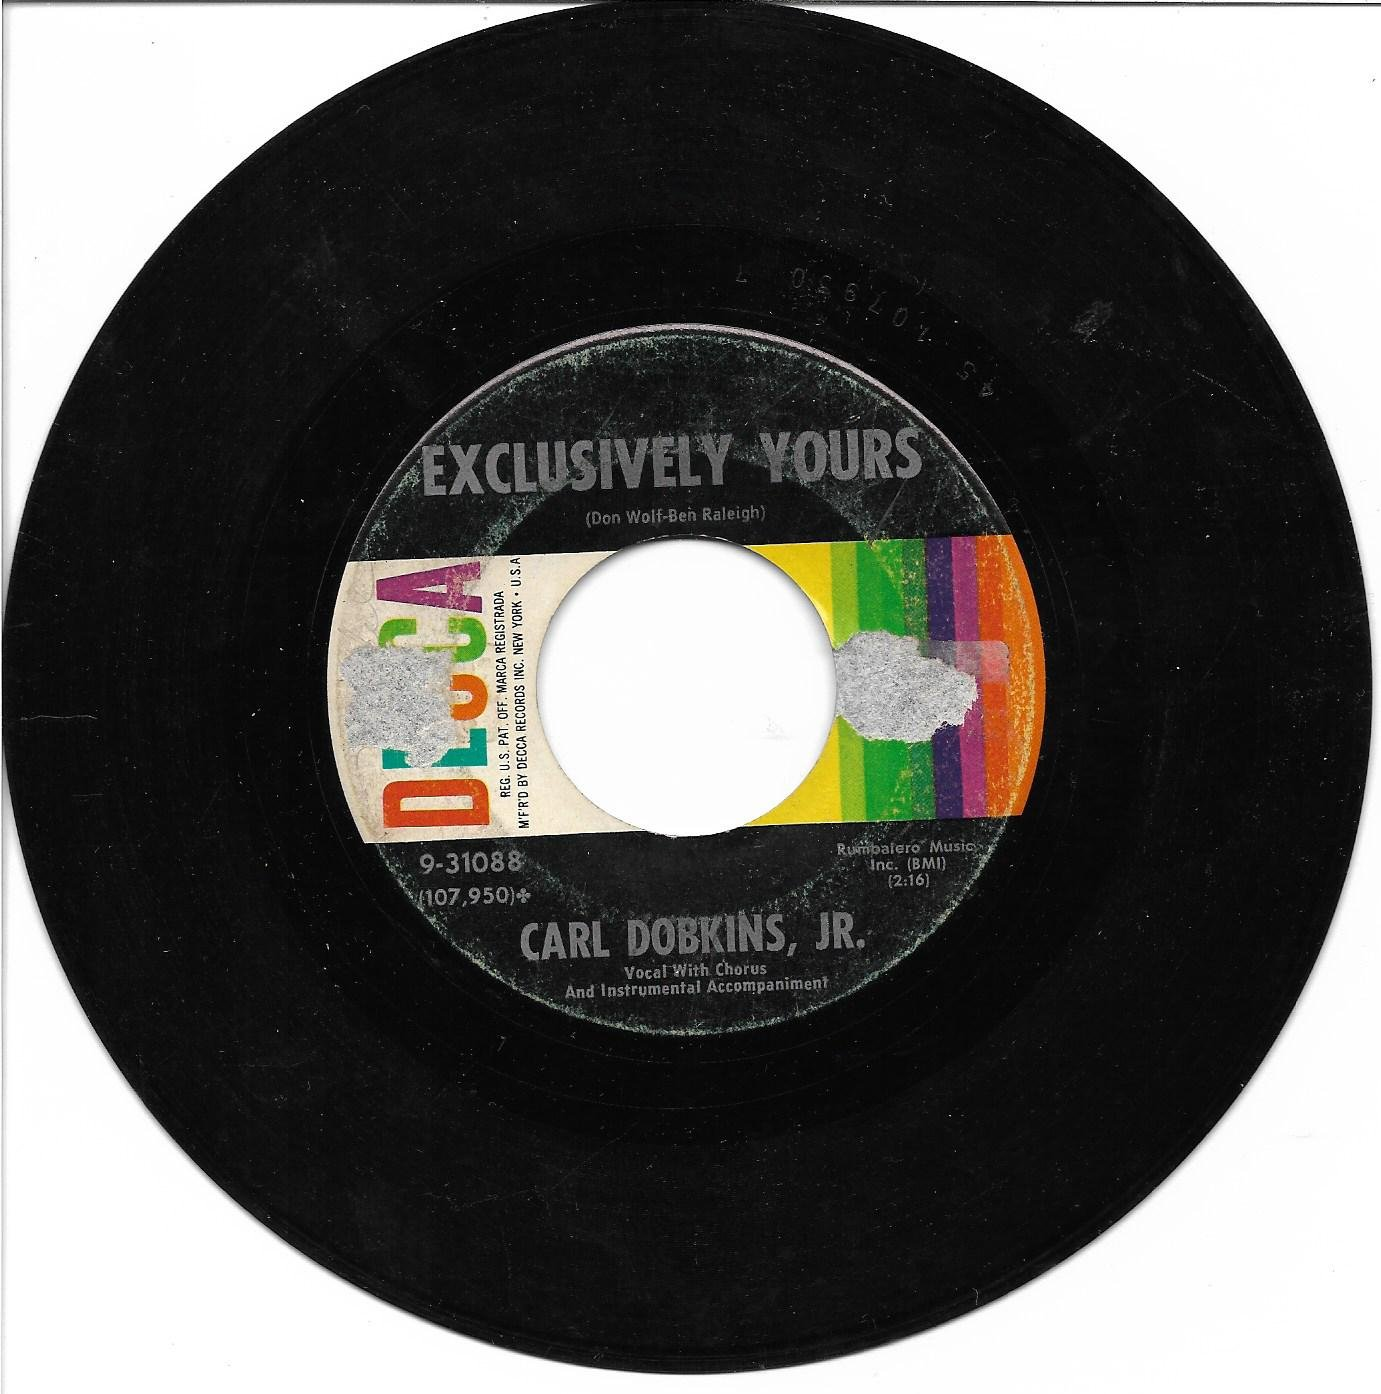 """Carl Dobkins Jr: """"Exclusively Yours"""" / """"One Little Girl"""" - '60 hit - plays close to NM!"""